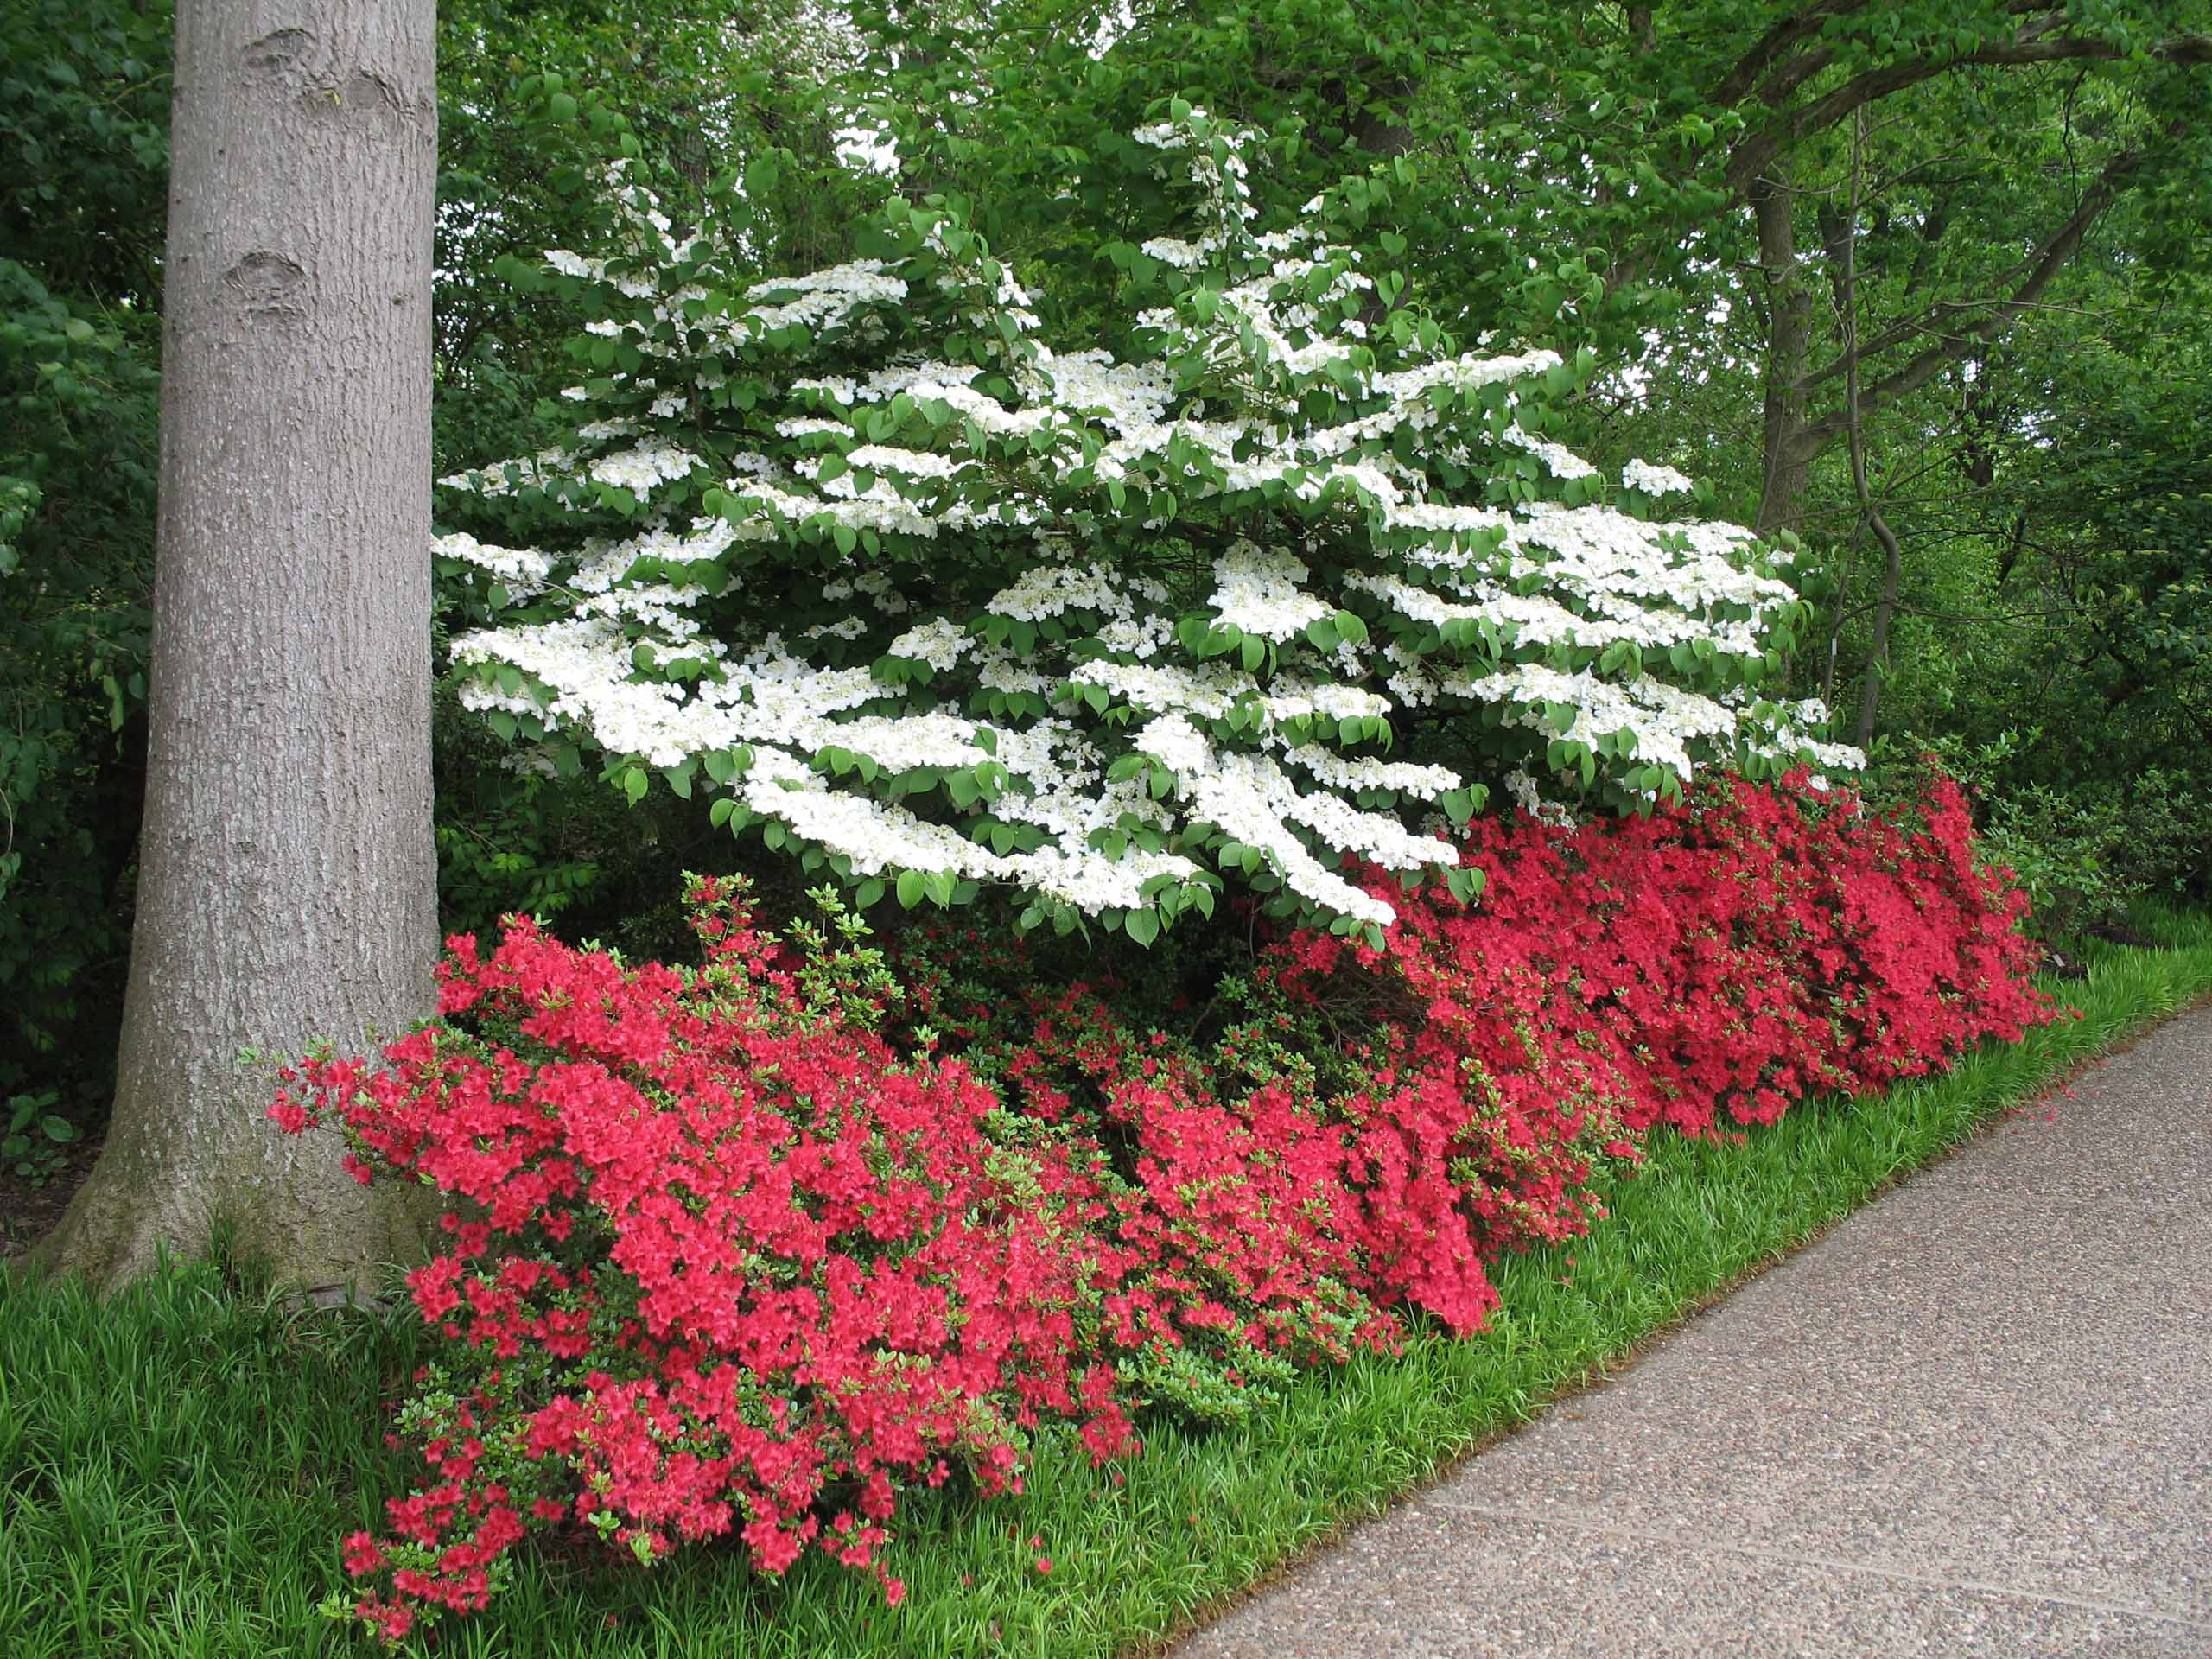 Viburnum and Azalea